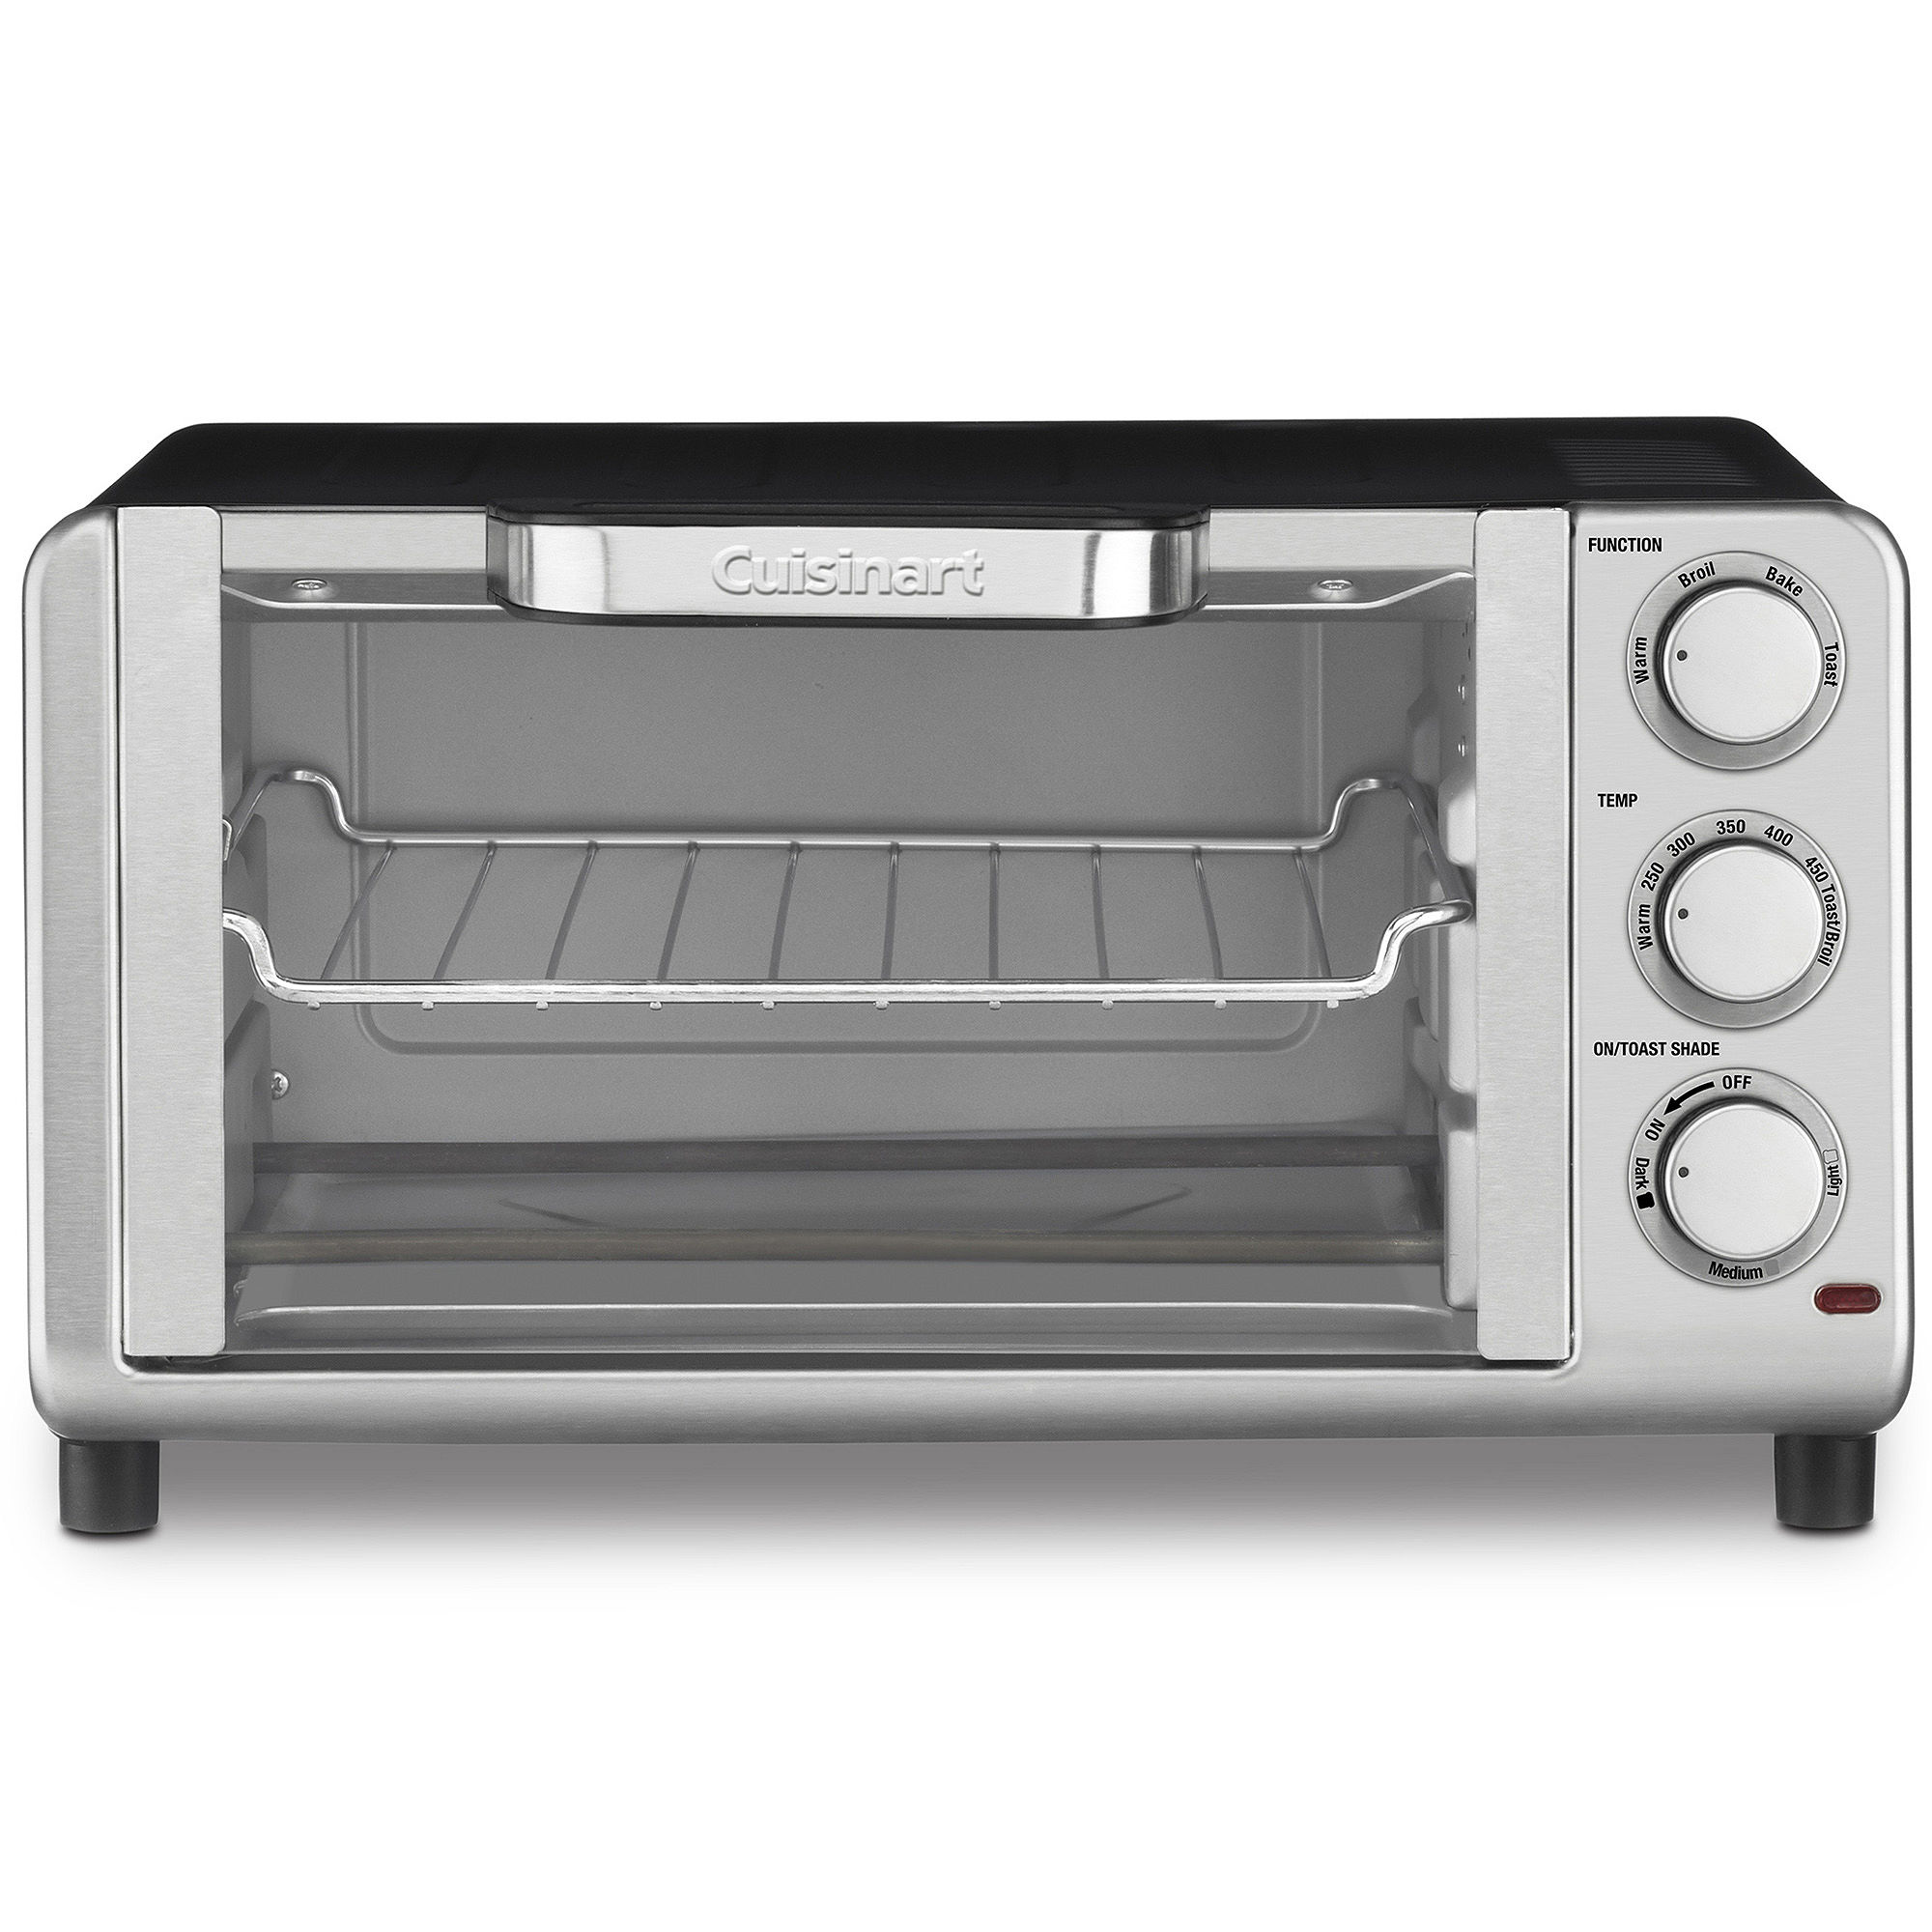 Cuisinart 4-Slice Compact Toaster Oven